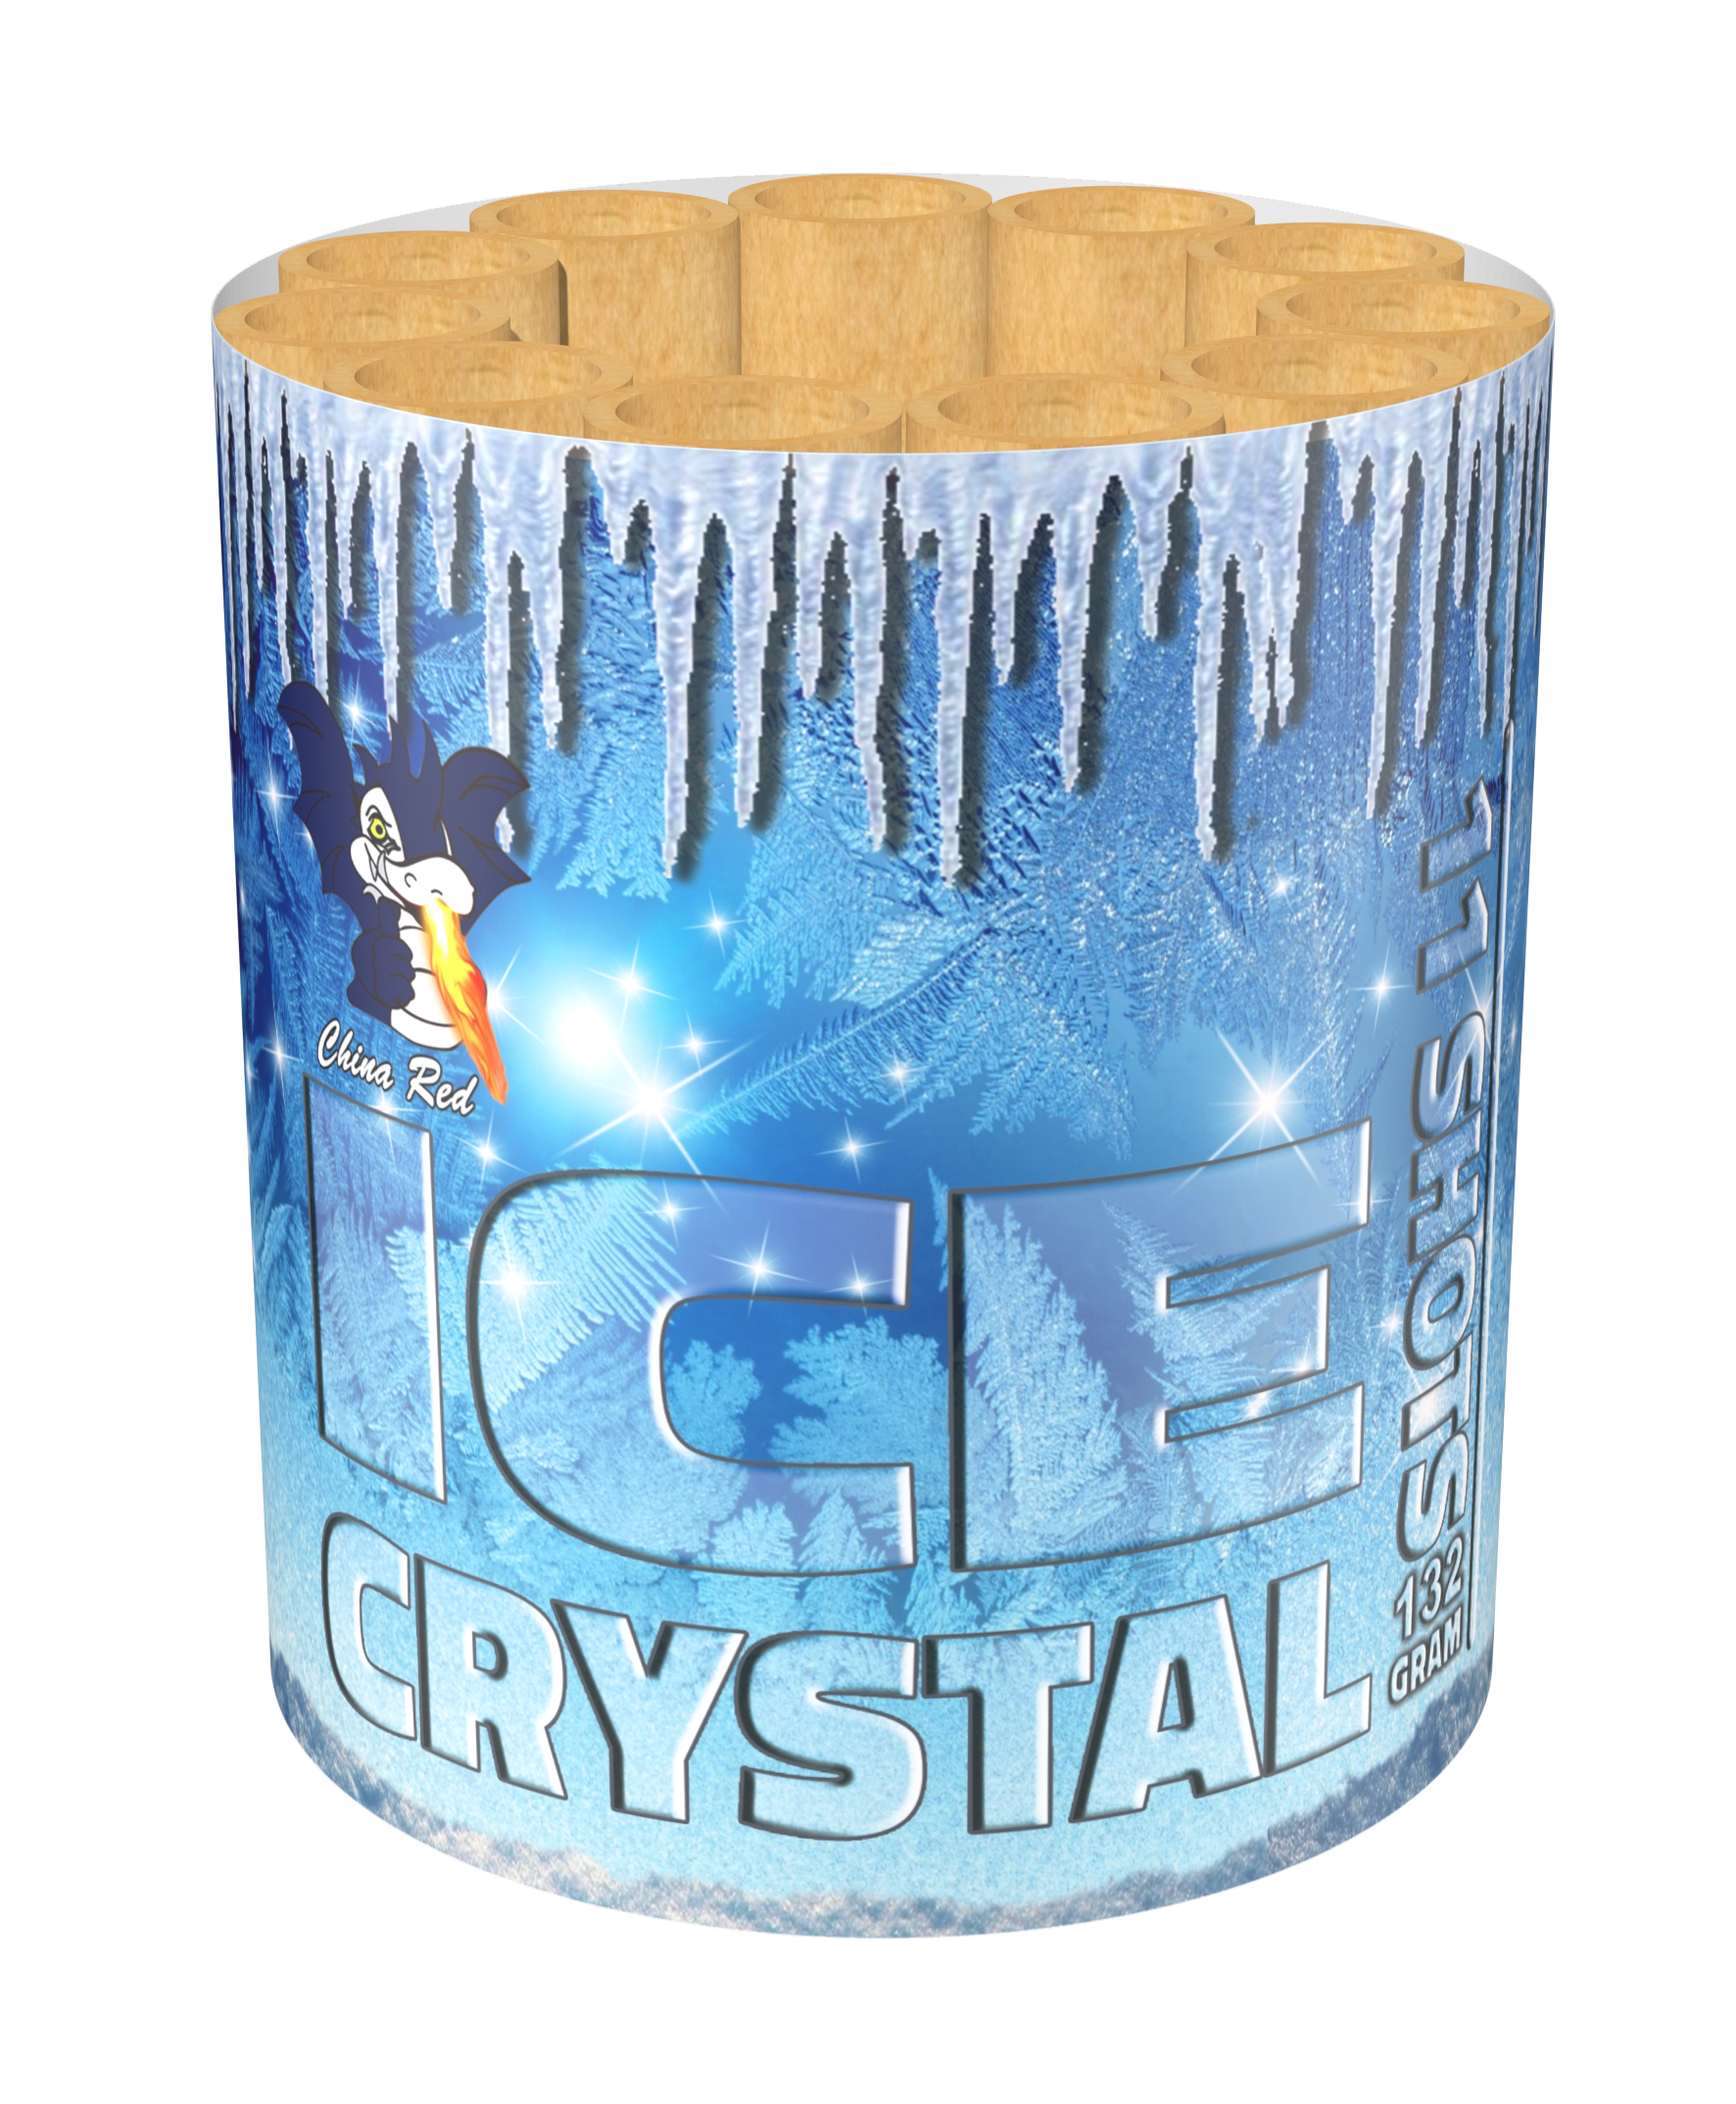 Ice cristal intratuin lochem for Intratuin lochem